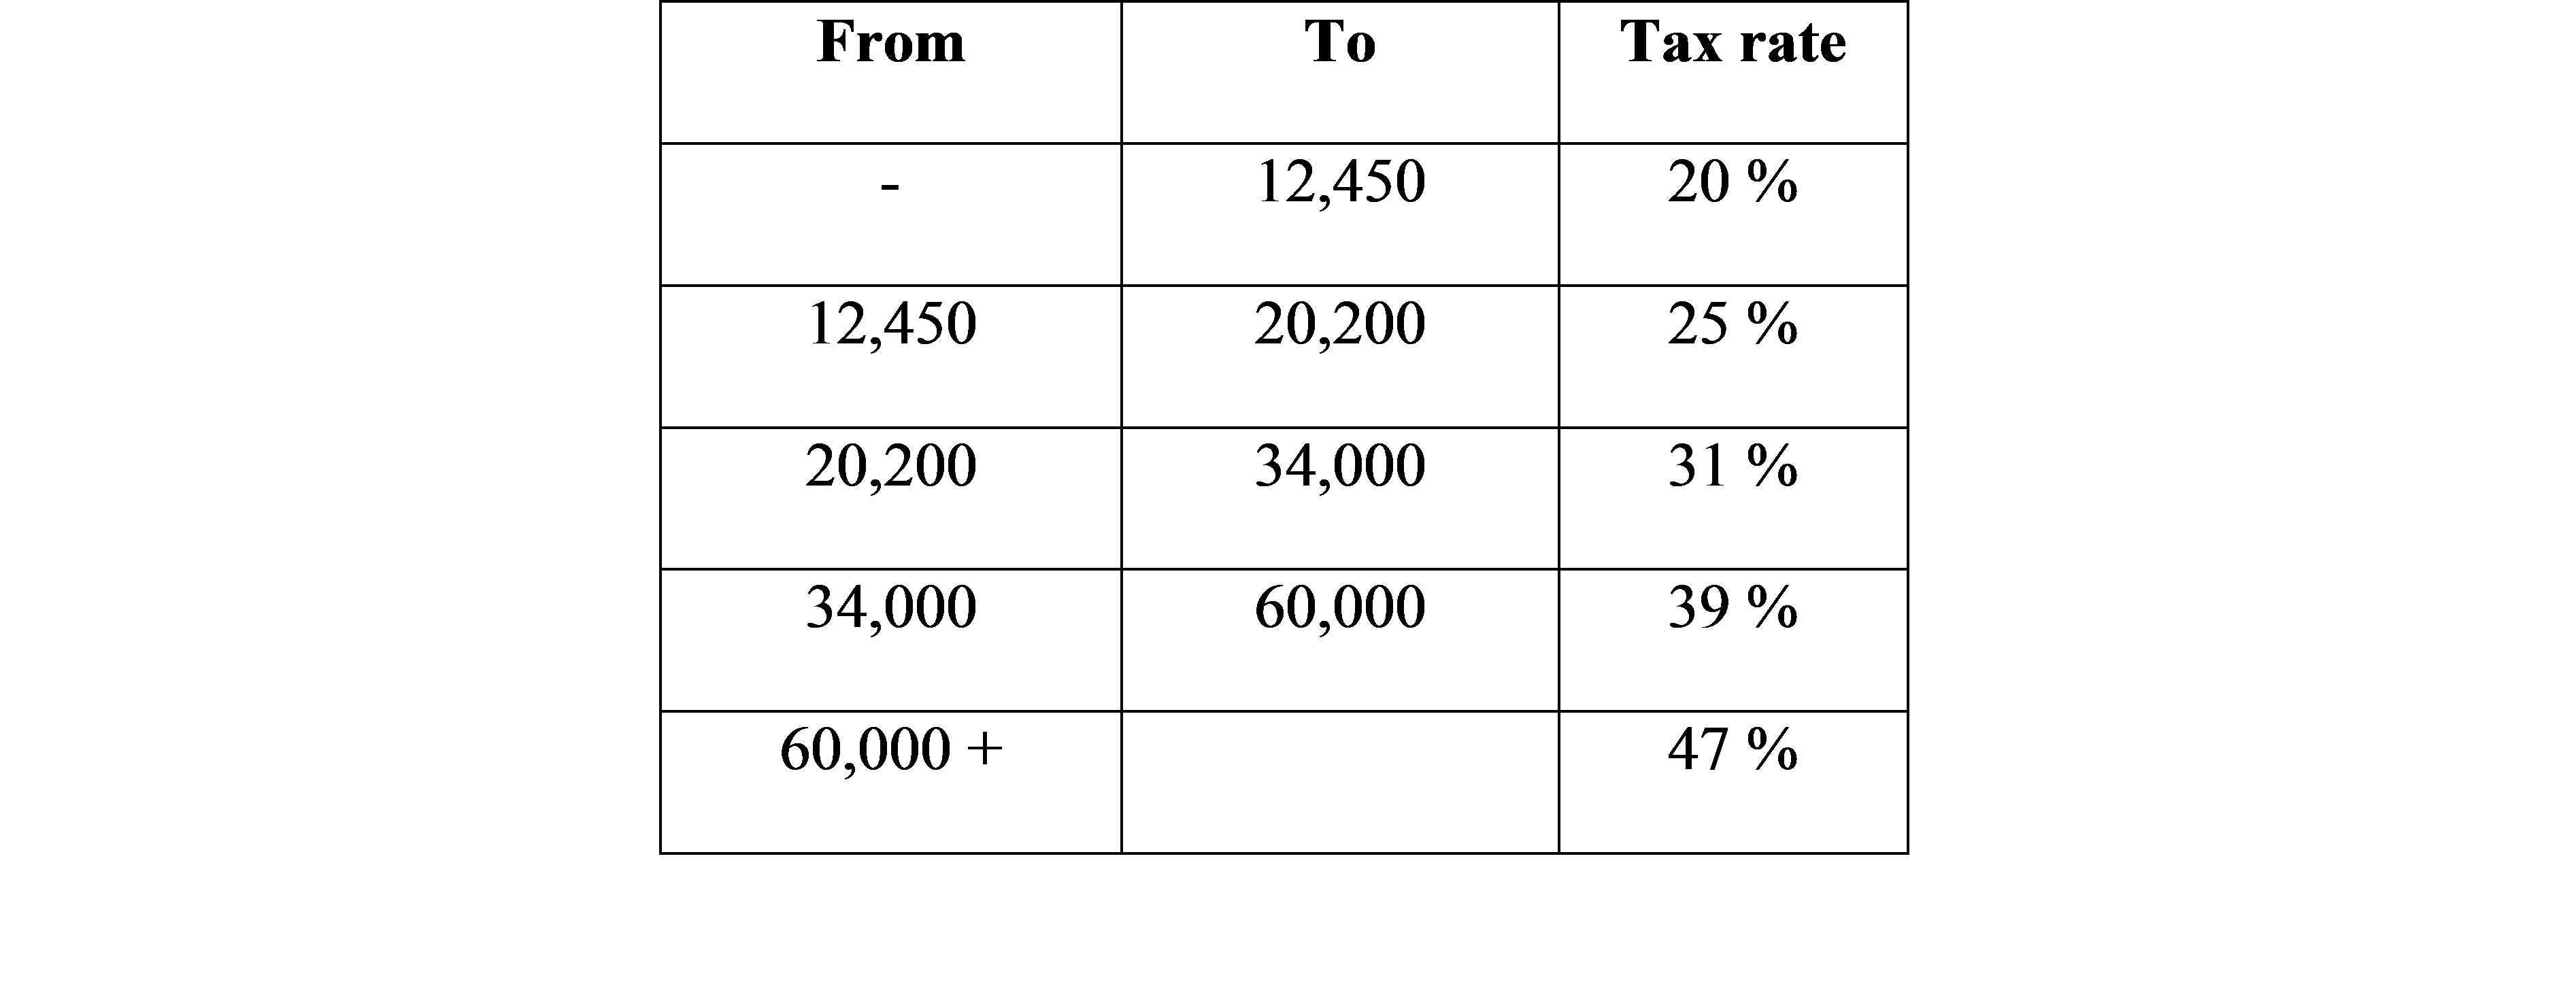 Tax Rates In Spain For